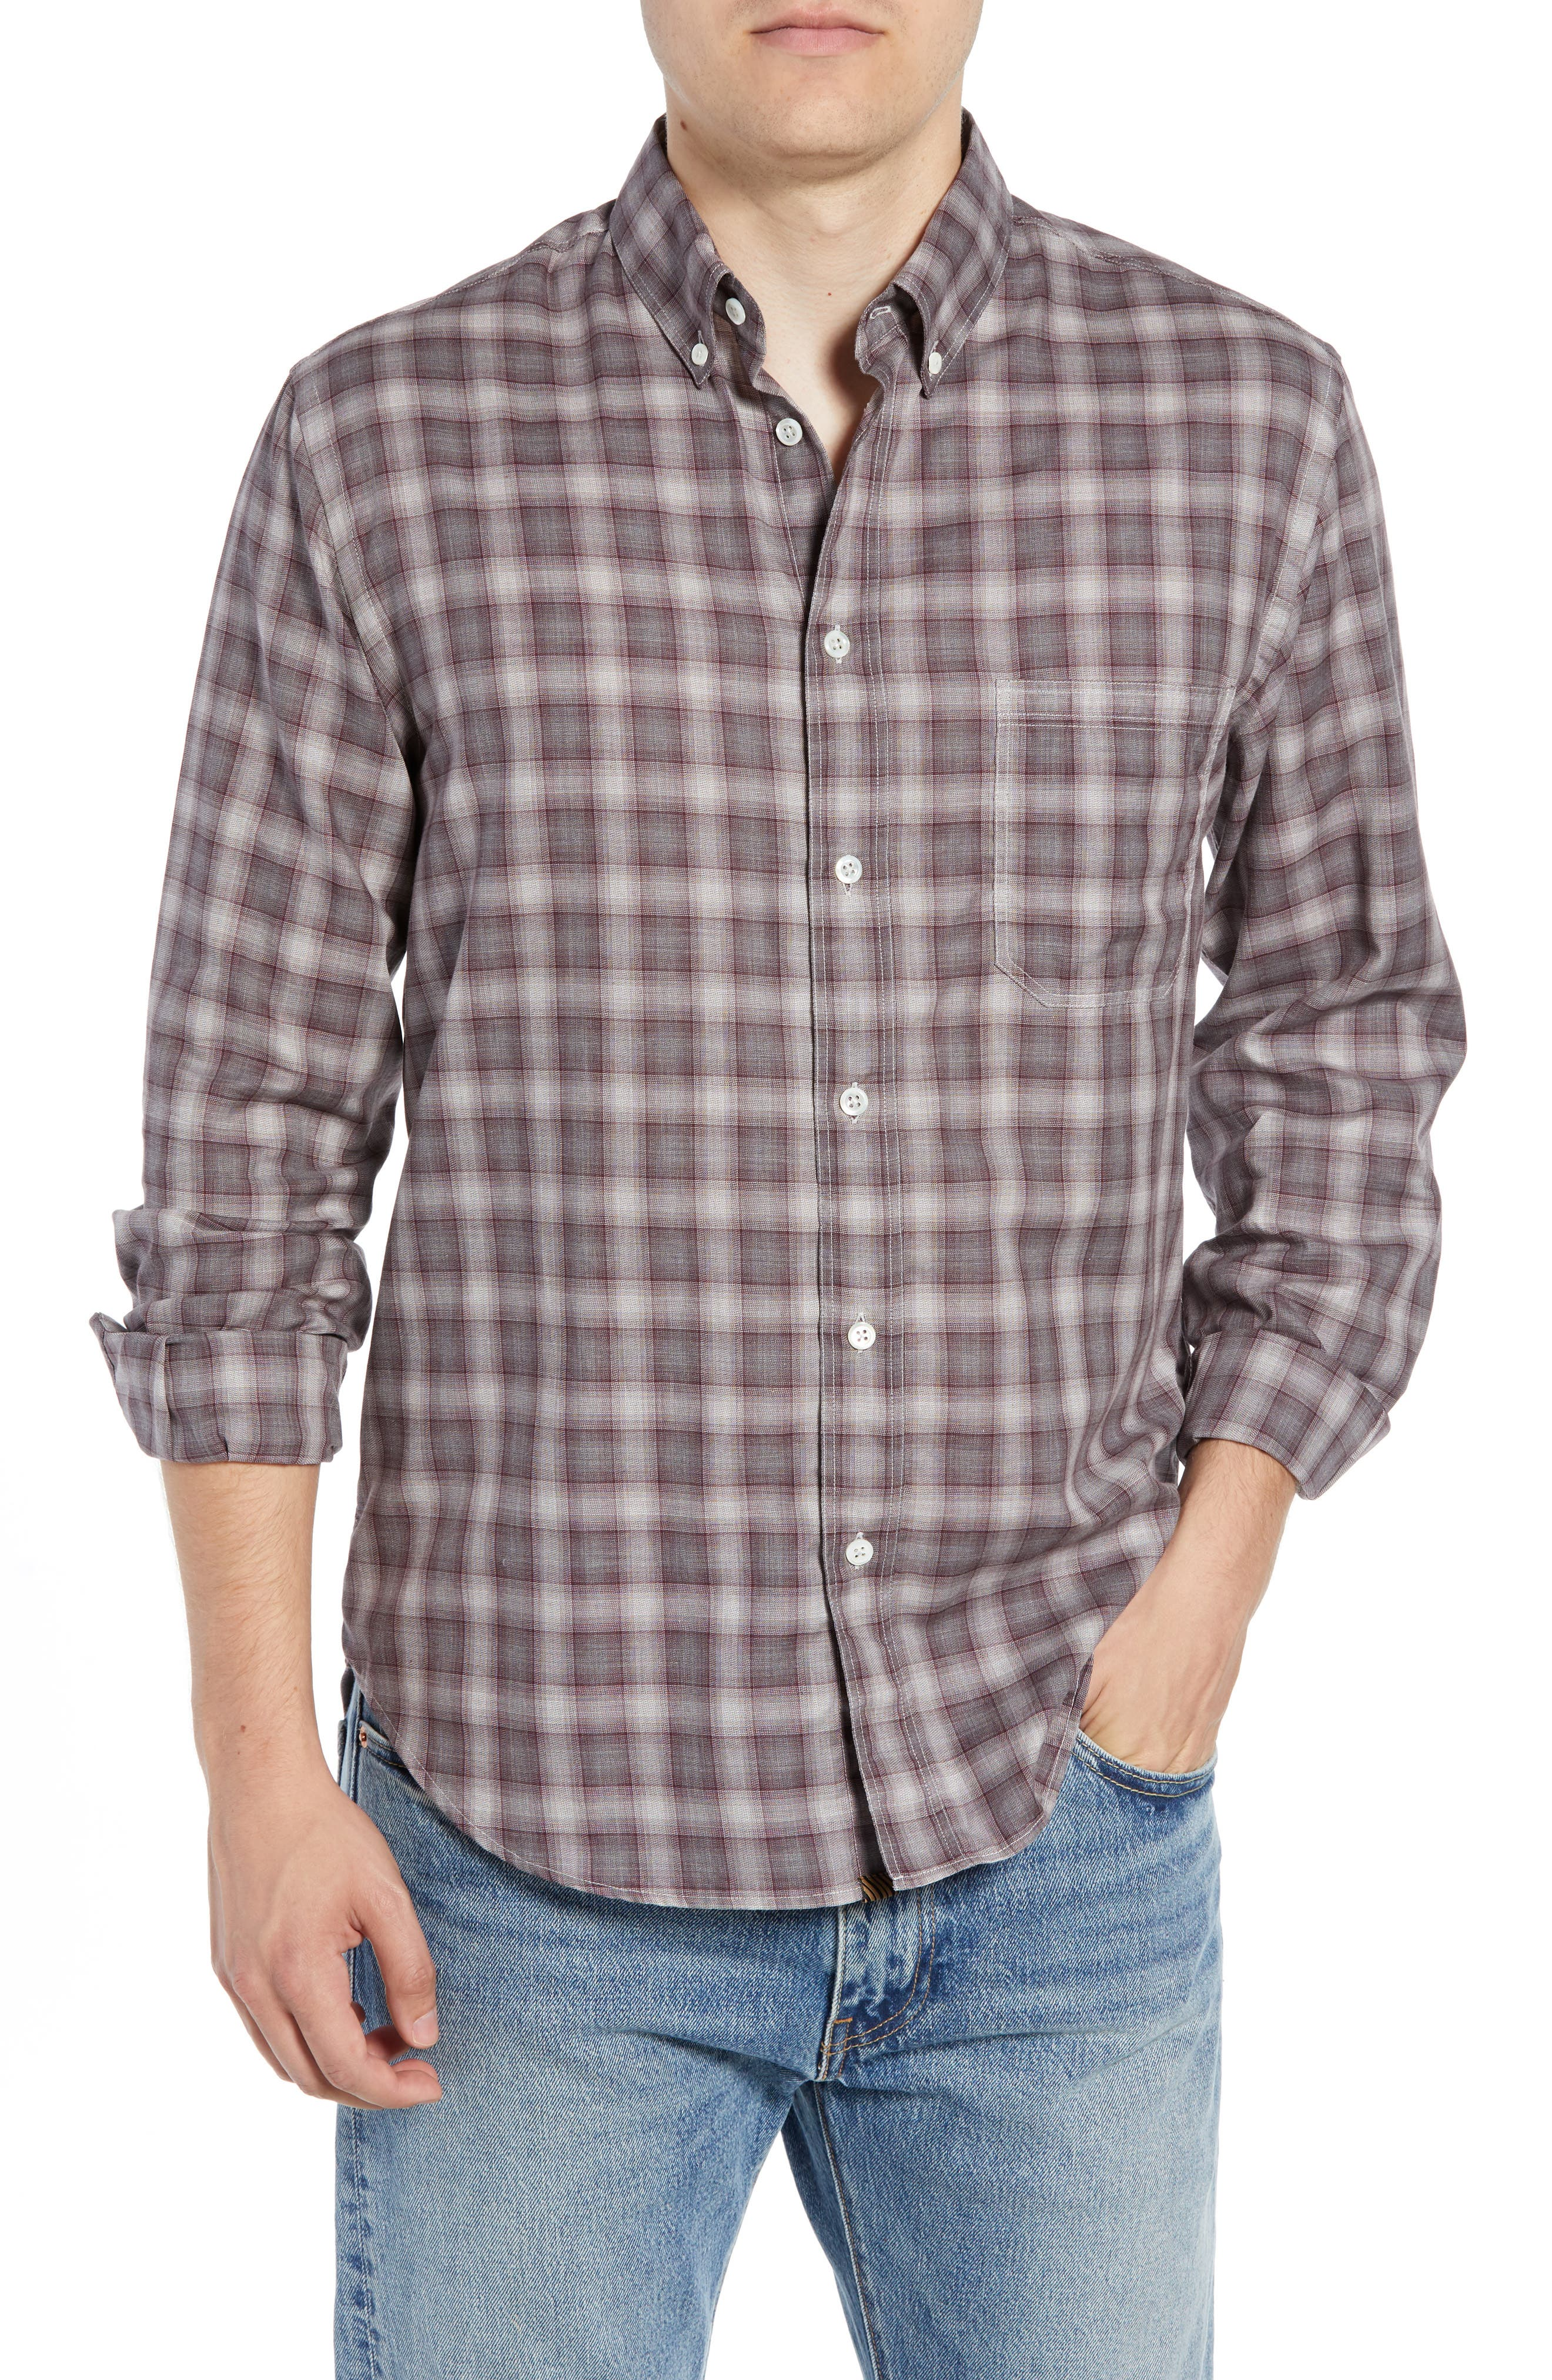 Tuscumbia Regular Fit Plaid Sport Shirt, Main, color, 930